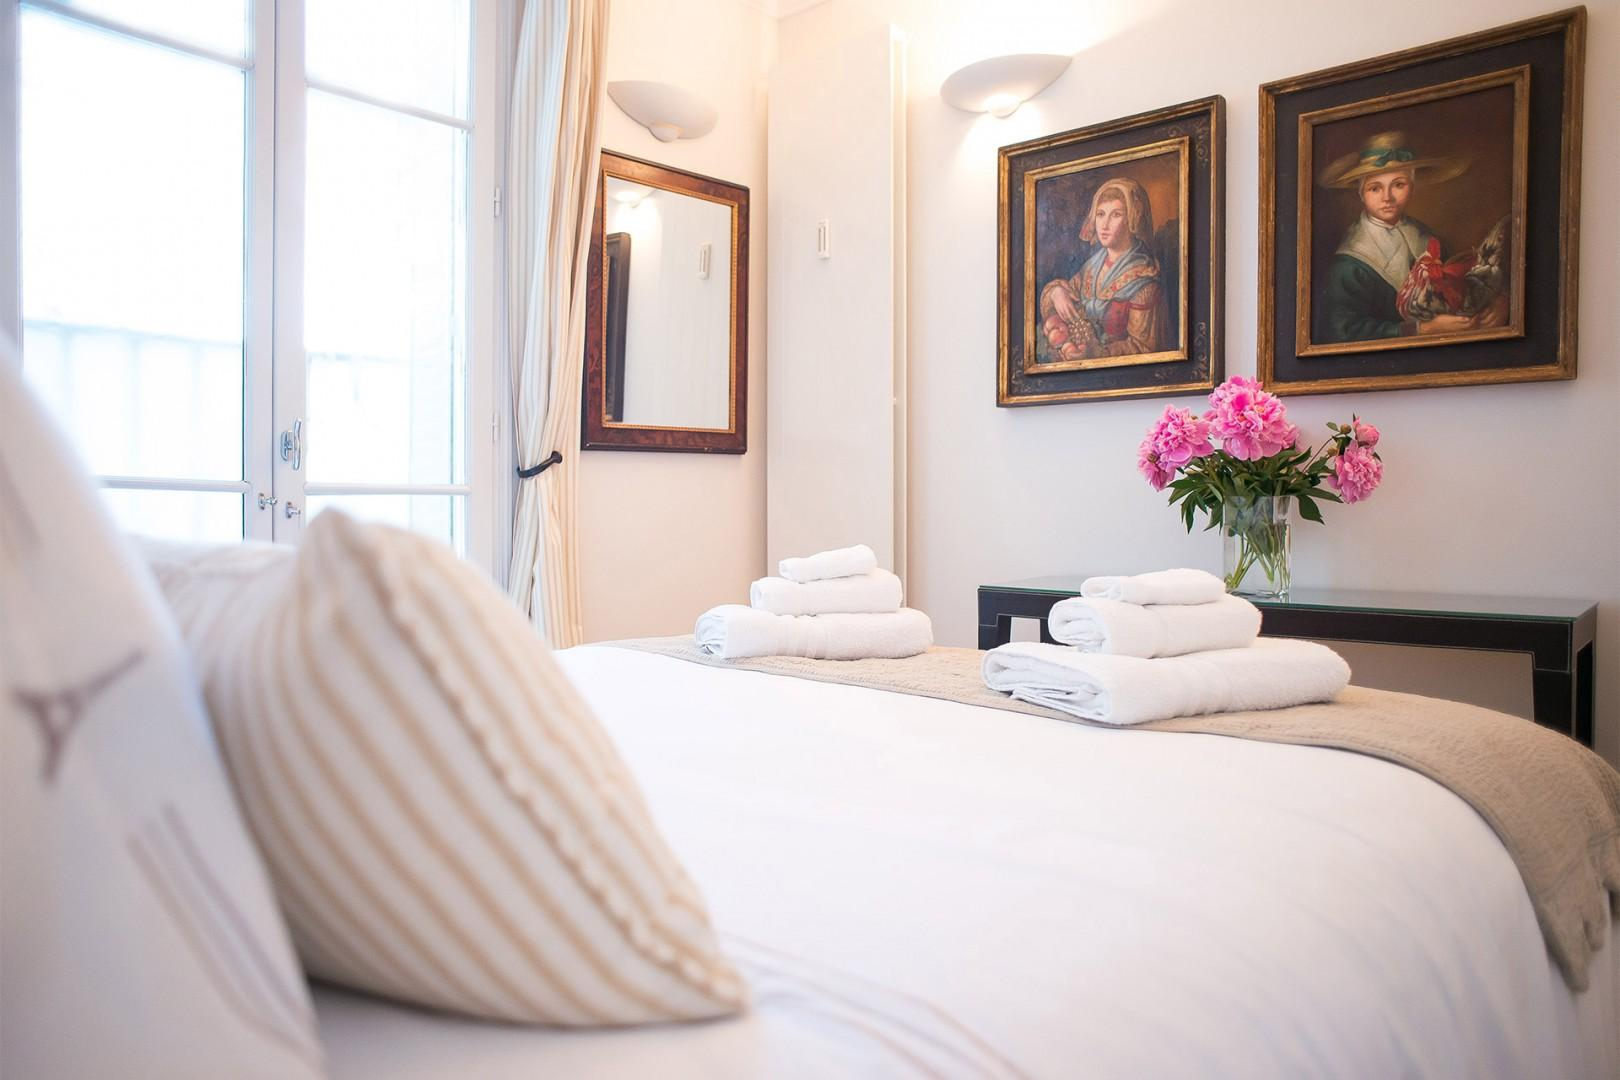 All the bedrooms are inviting and decorated with a French flair.